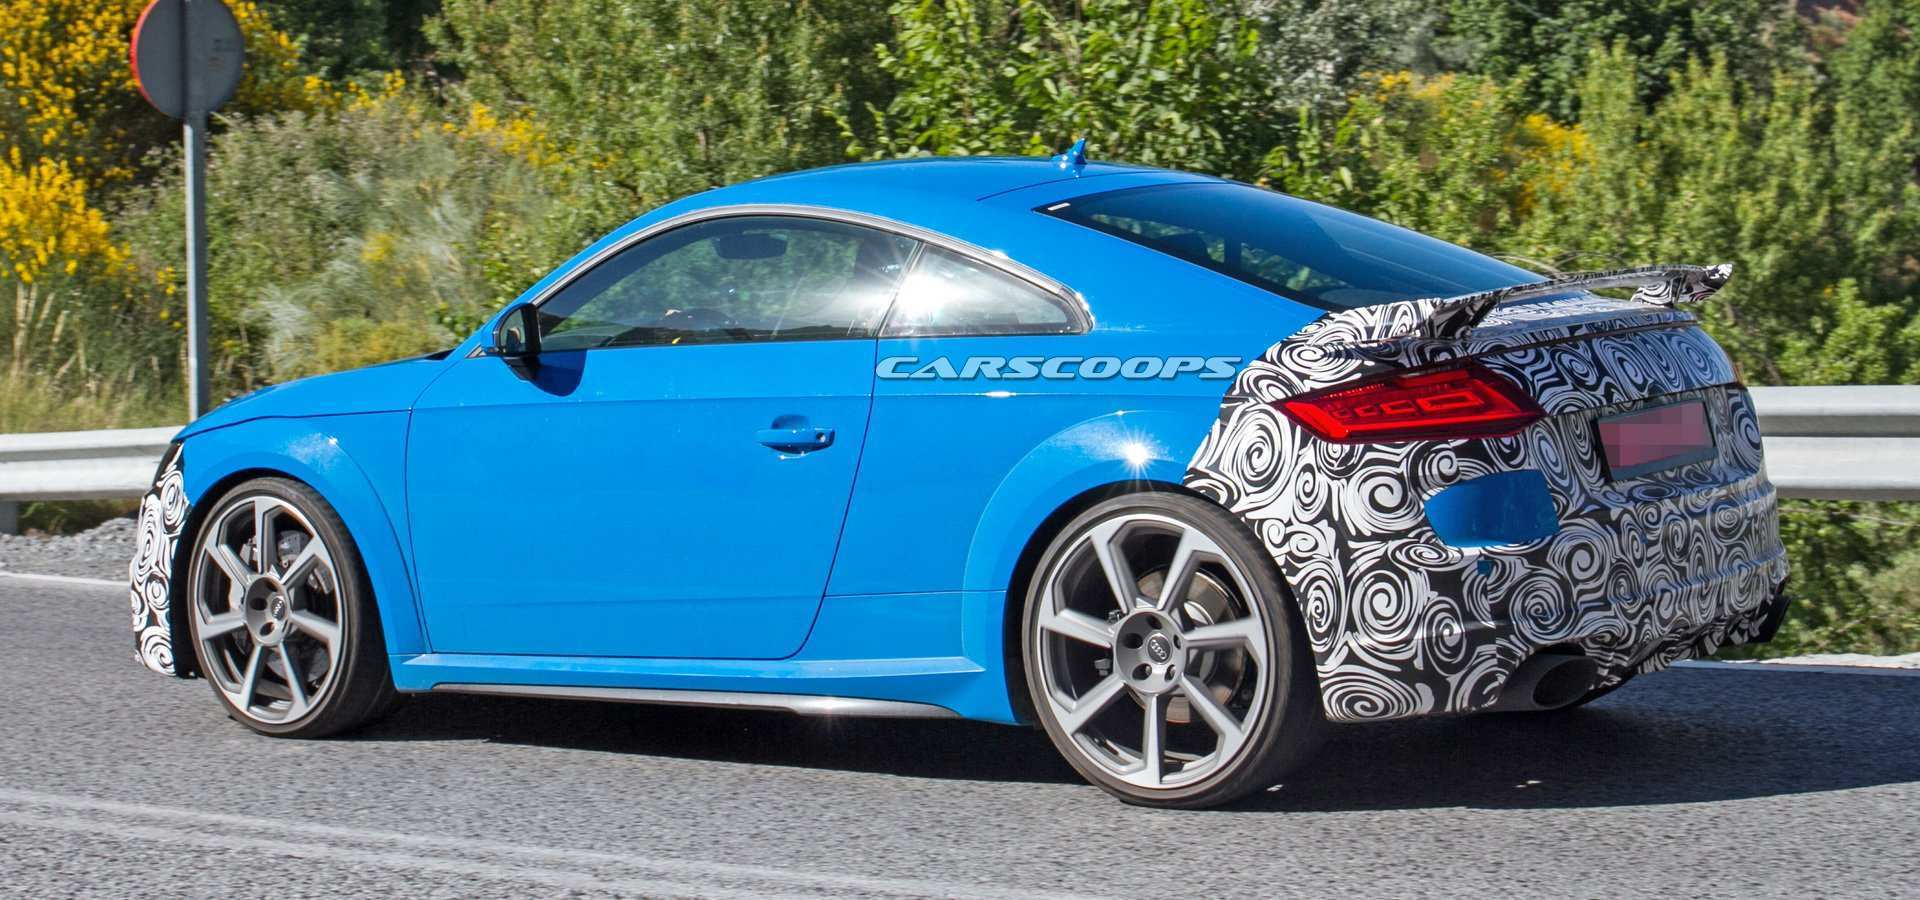 34 Great 2019 Audi Tt Rs Picture by 2019 Audi Tt Rs